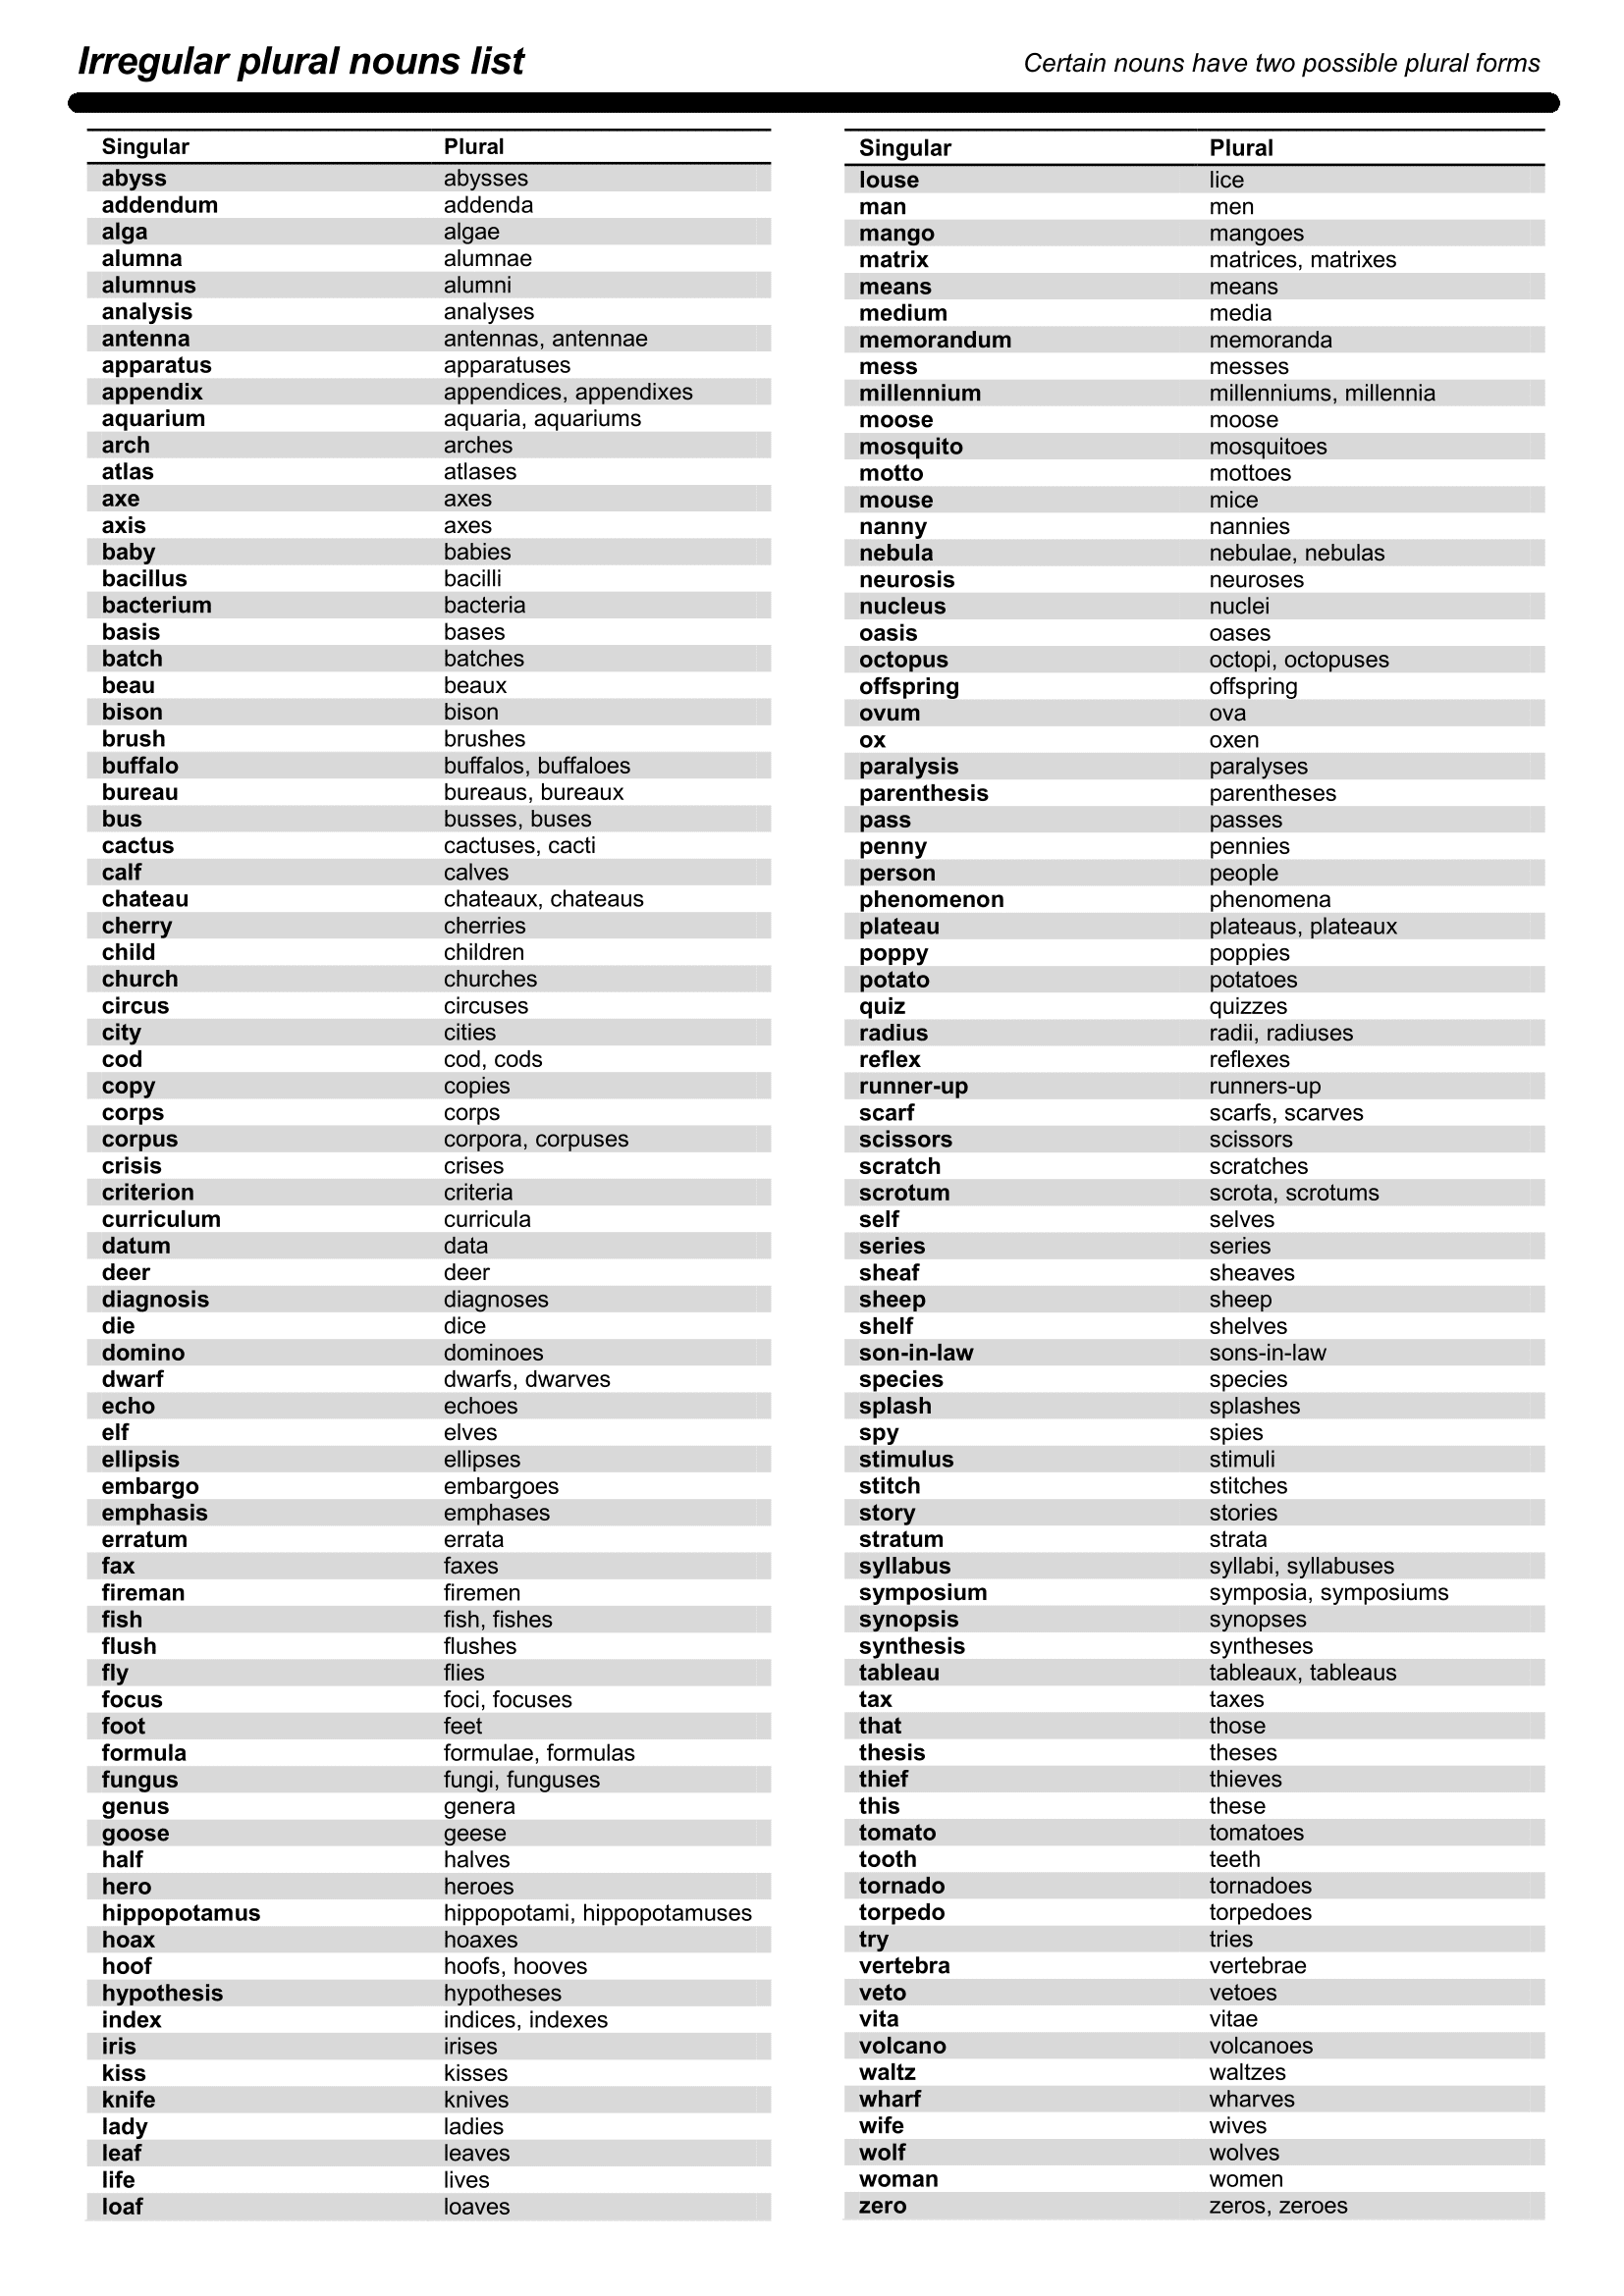 The Most Common Irregular Plural Nouns in English | Count, English ...